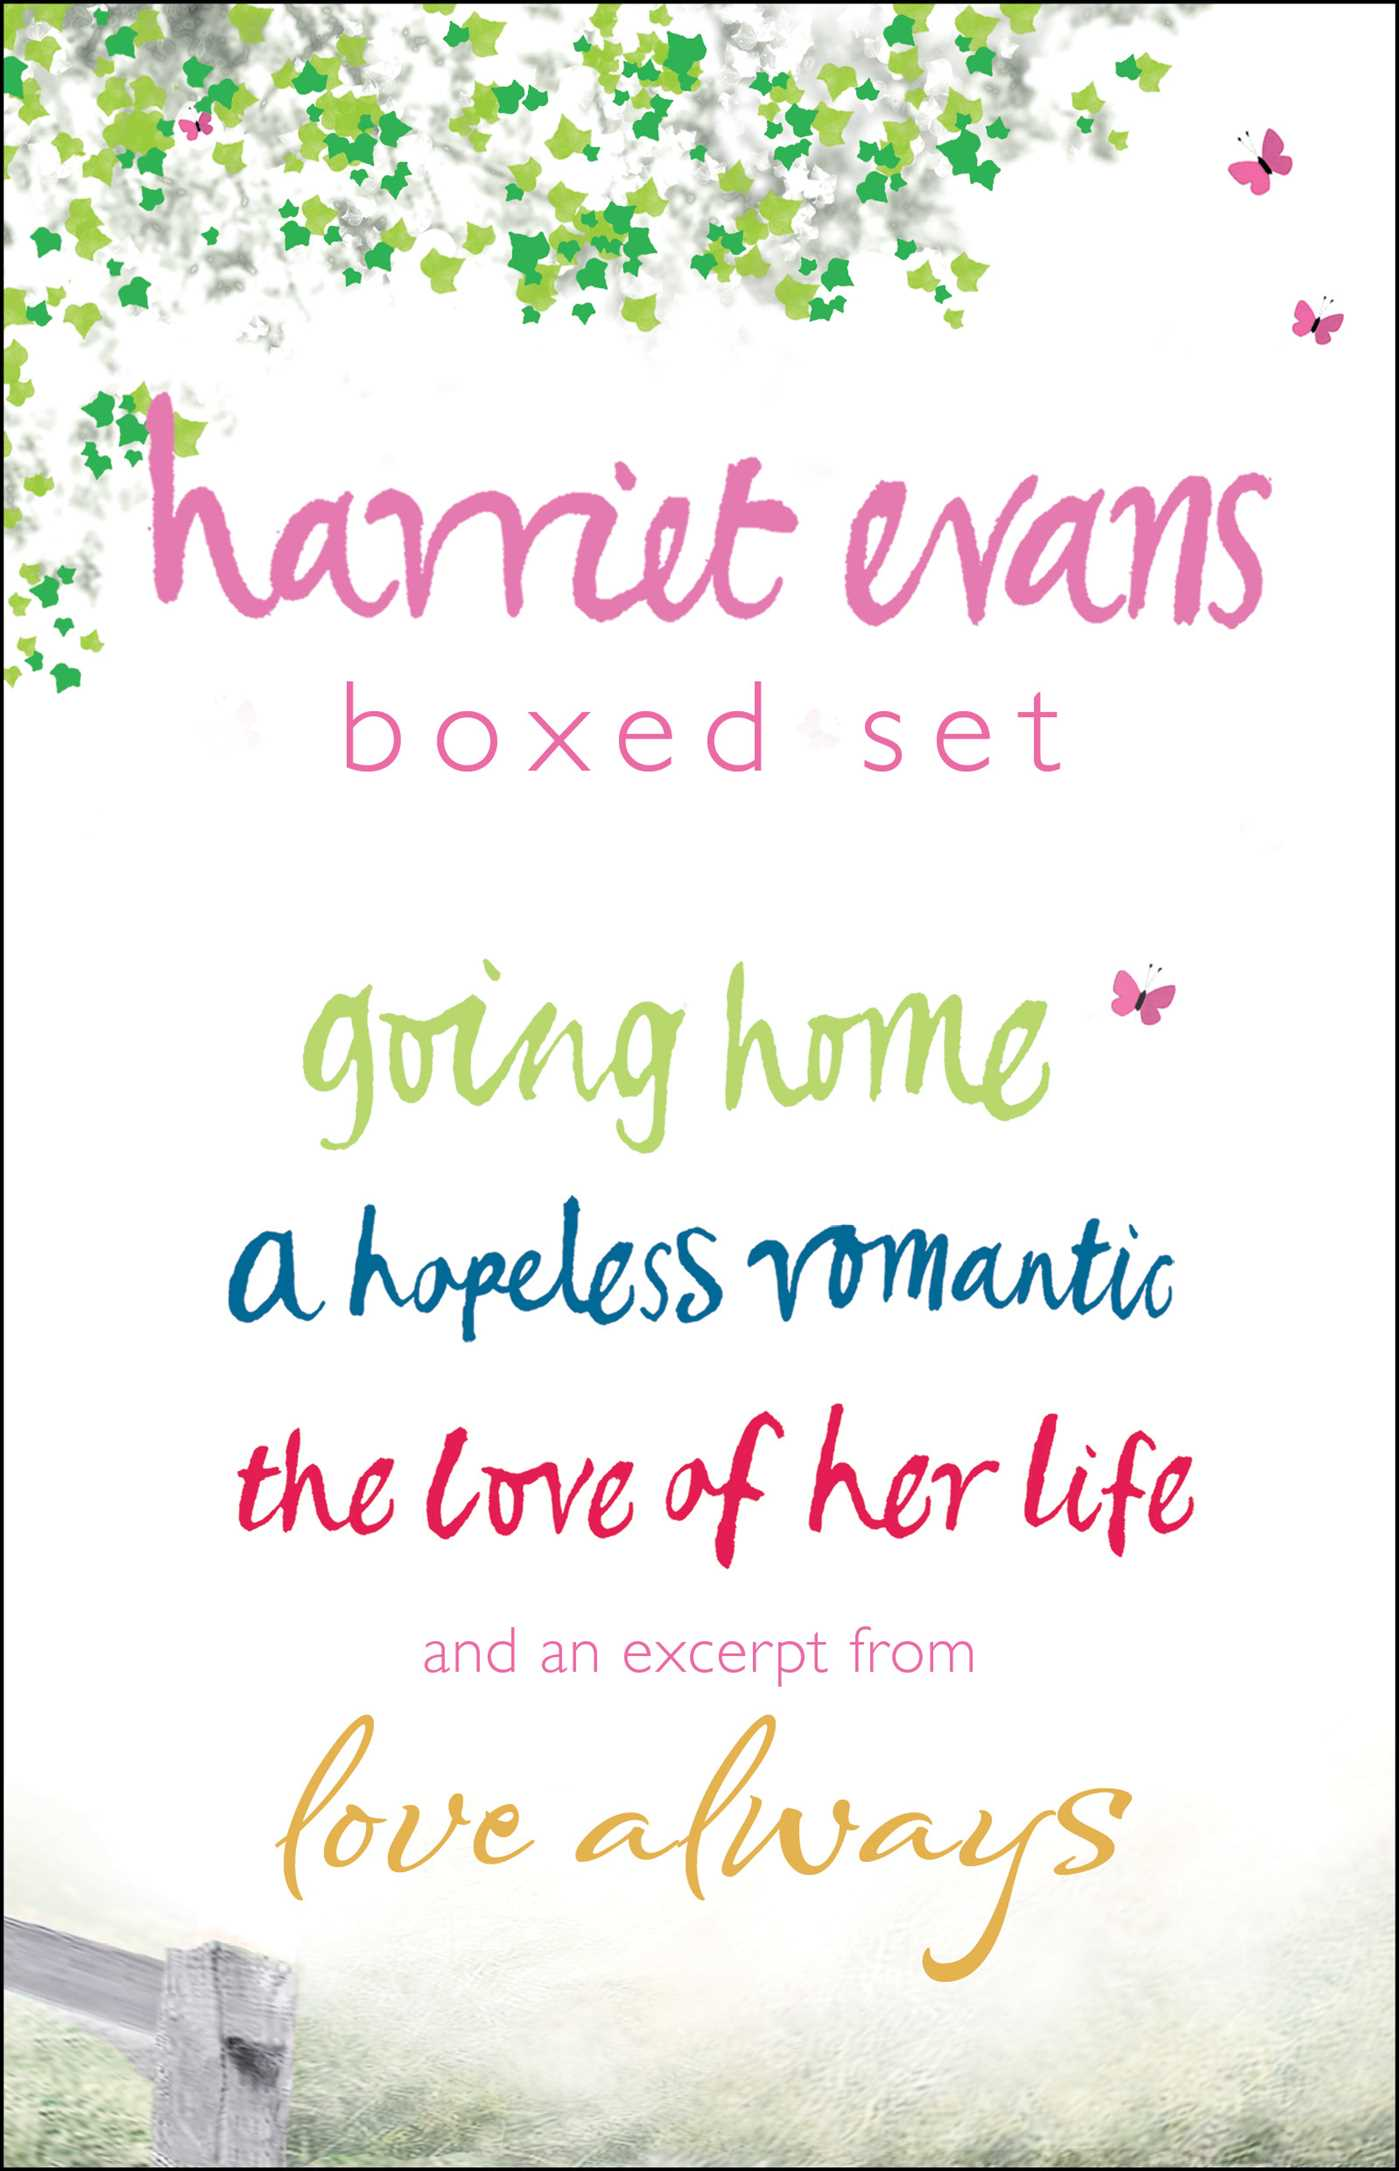 Harriet evans boxed set 9781451665727 hr